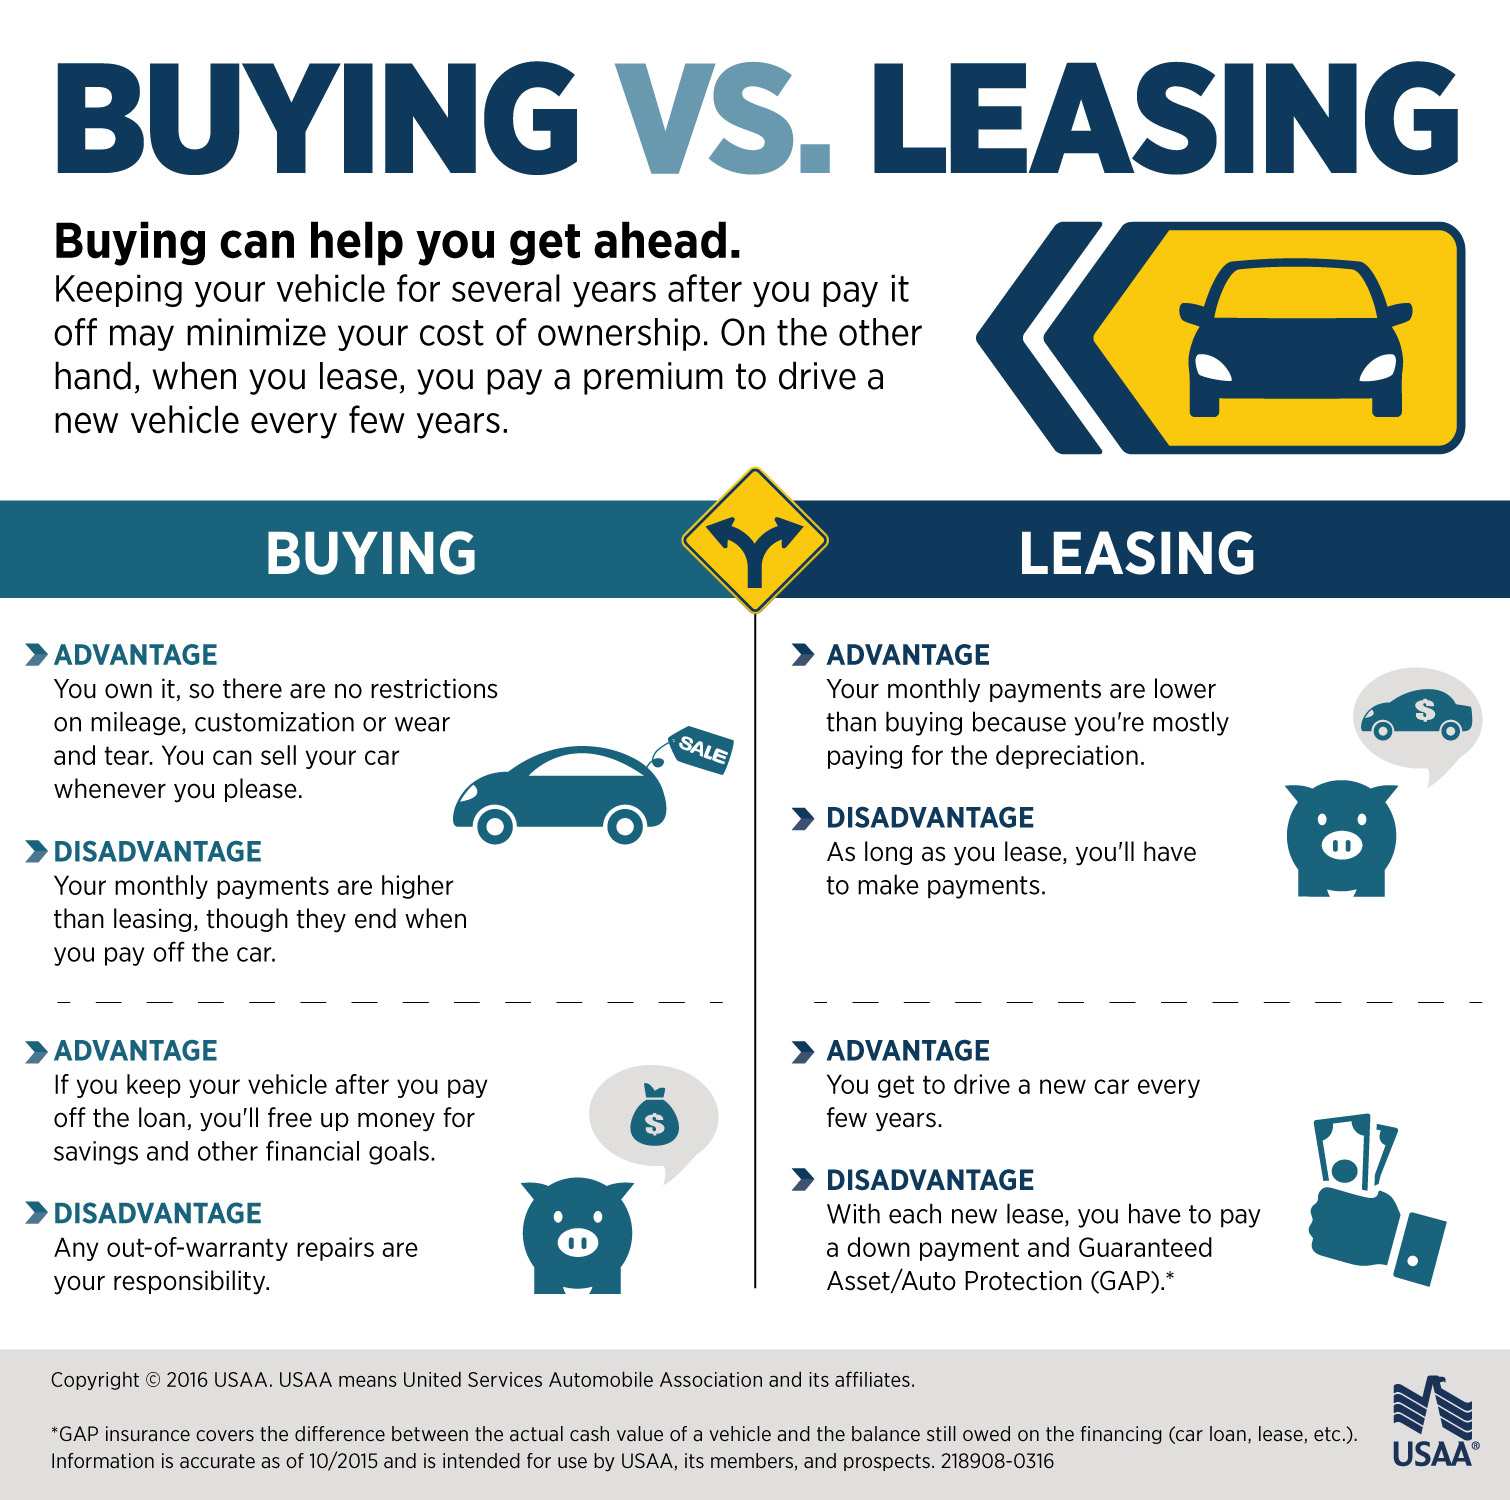 valley chevy buying vs leasing a car infographic valley chevy. Black Bedroom Furniture Sets. Home Design Ideas